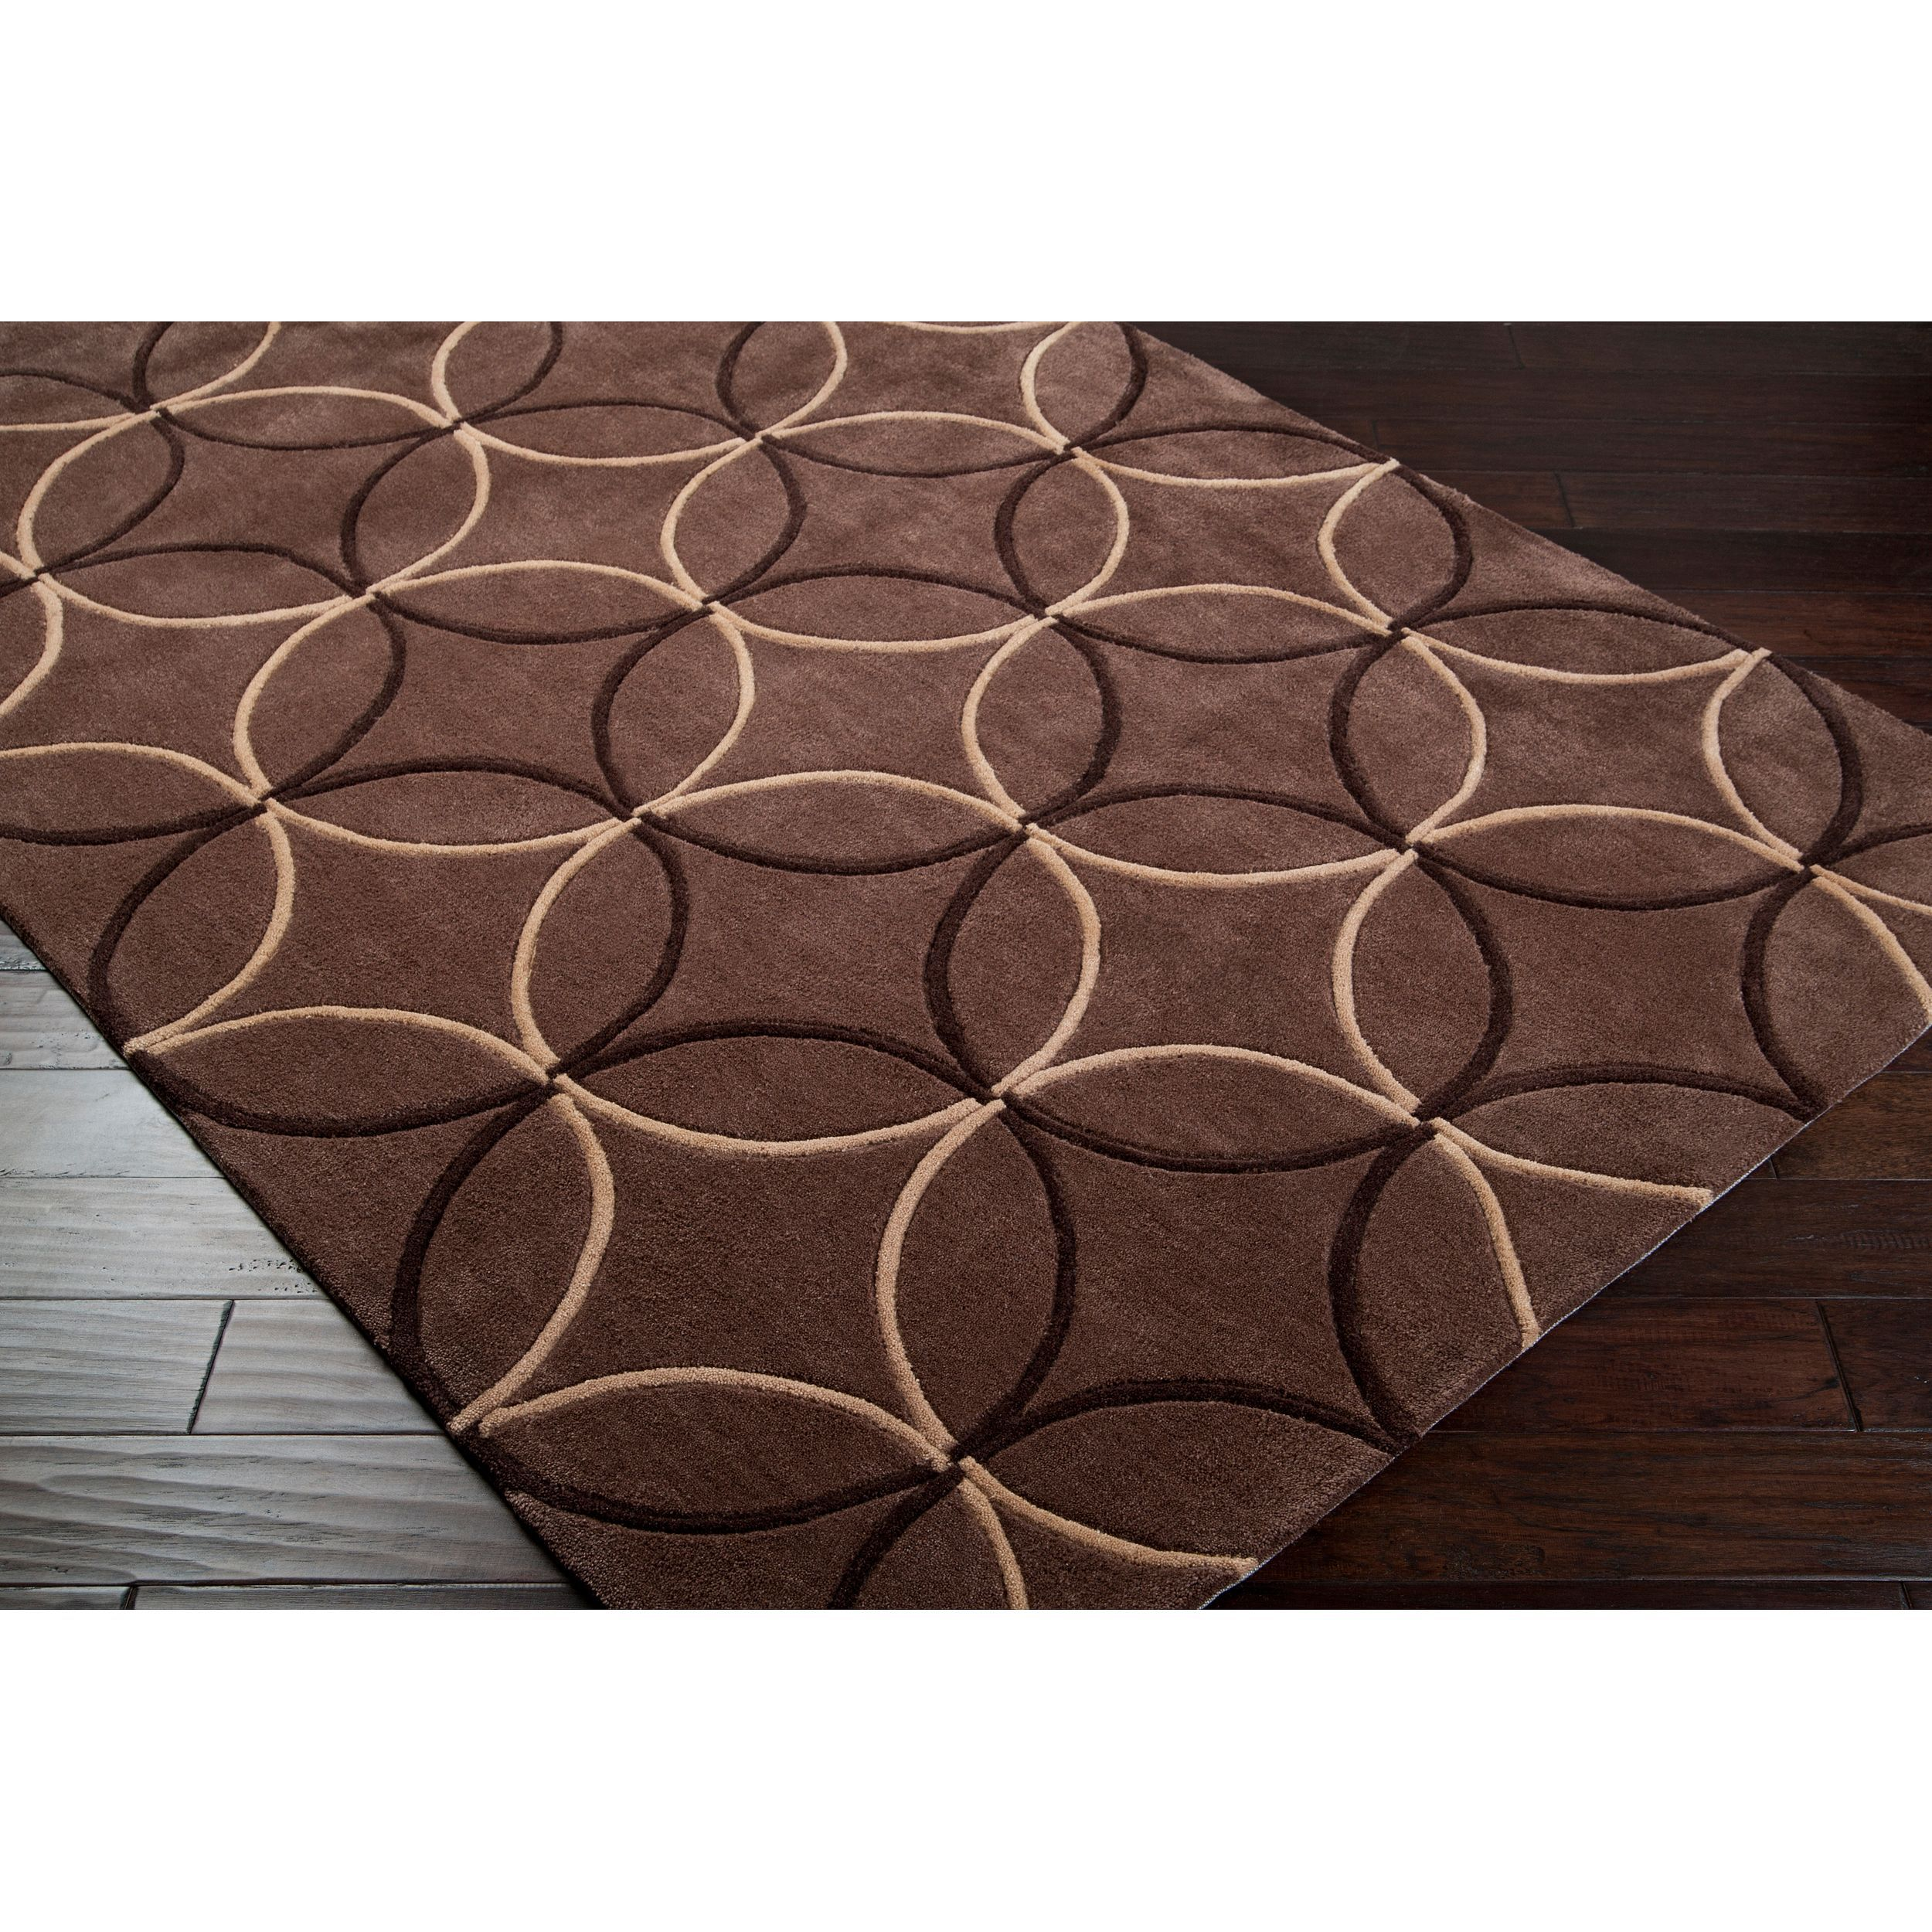 Design Retro Rug these durable brown geometric rugs bring the modern colors of hand tufted contemporary retro chic abstract rug x